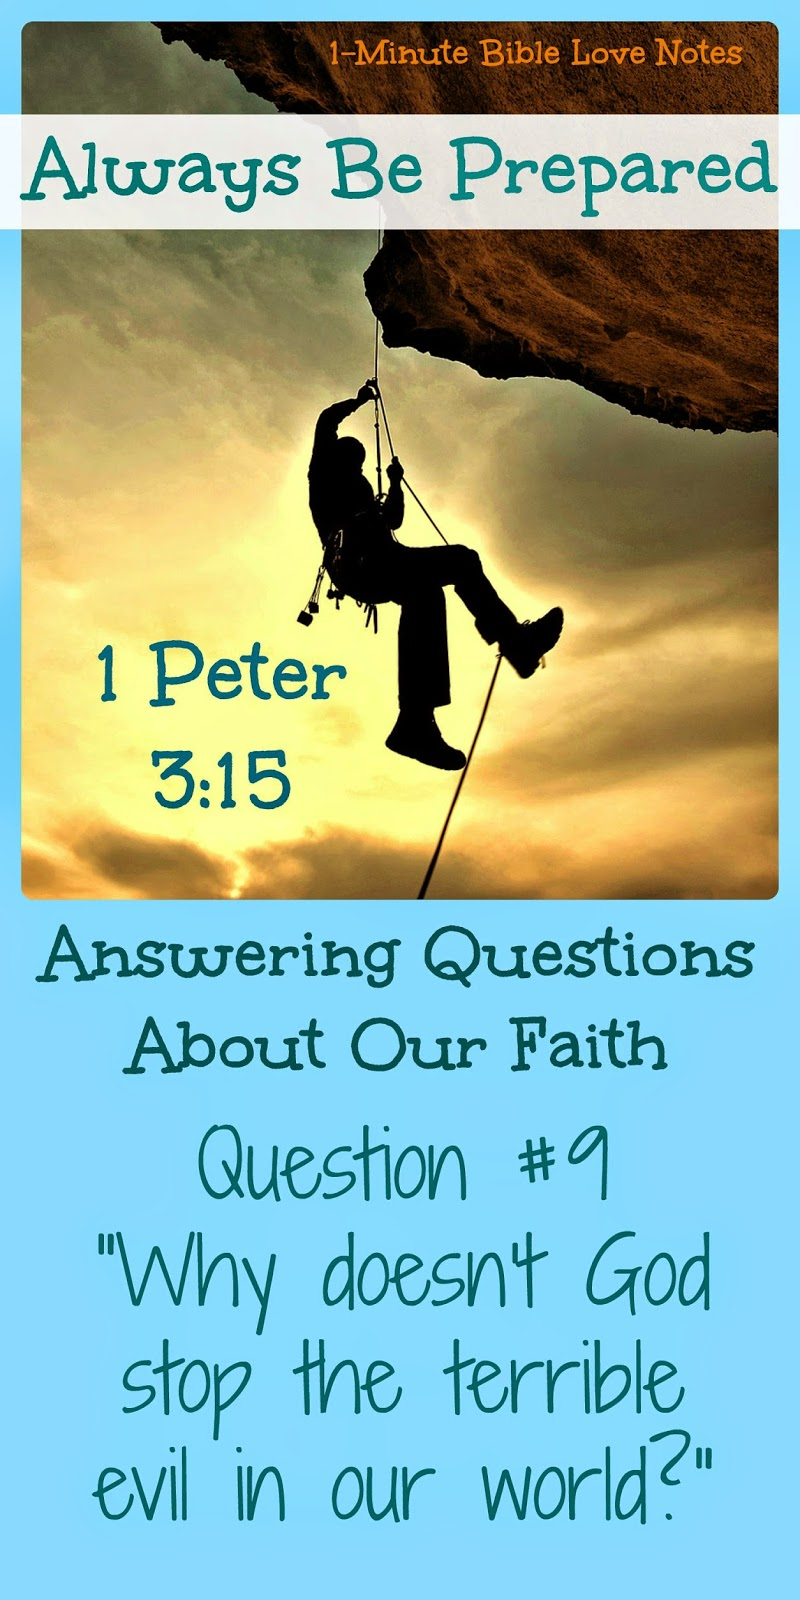 Questions about faith in God, why does God allow suffering? Why doesn't God stop evil